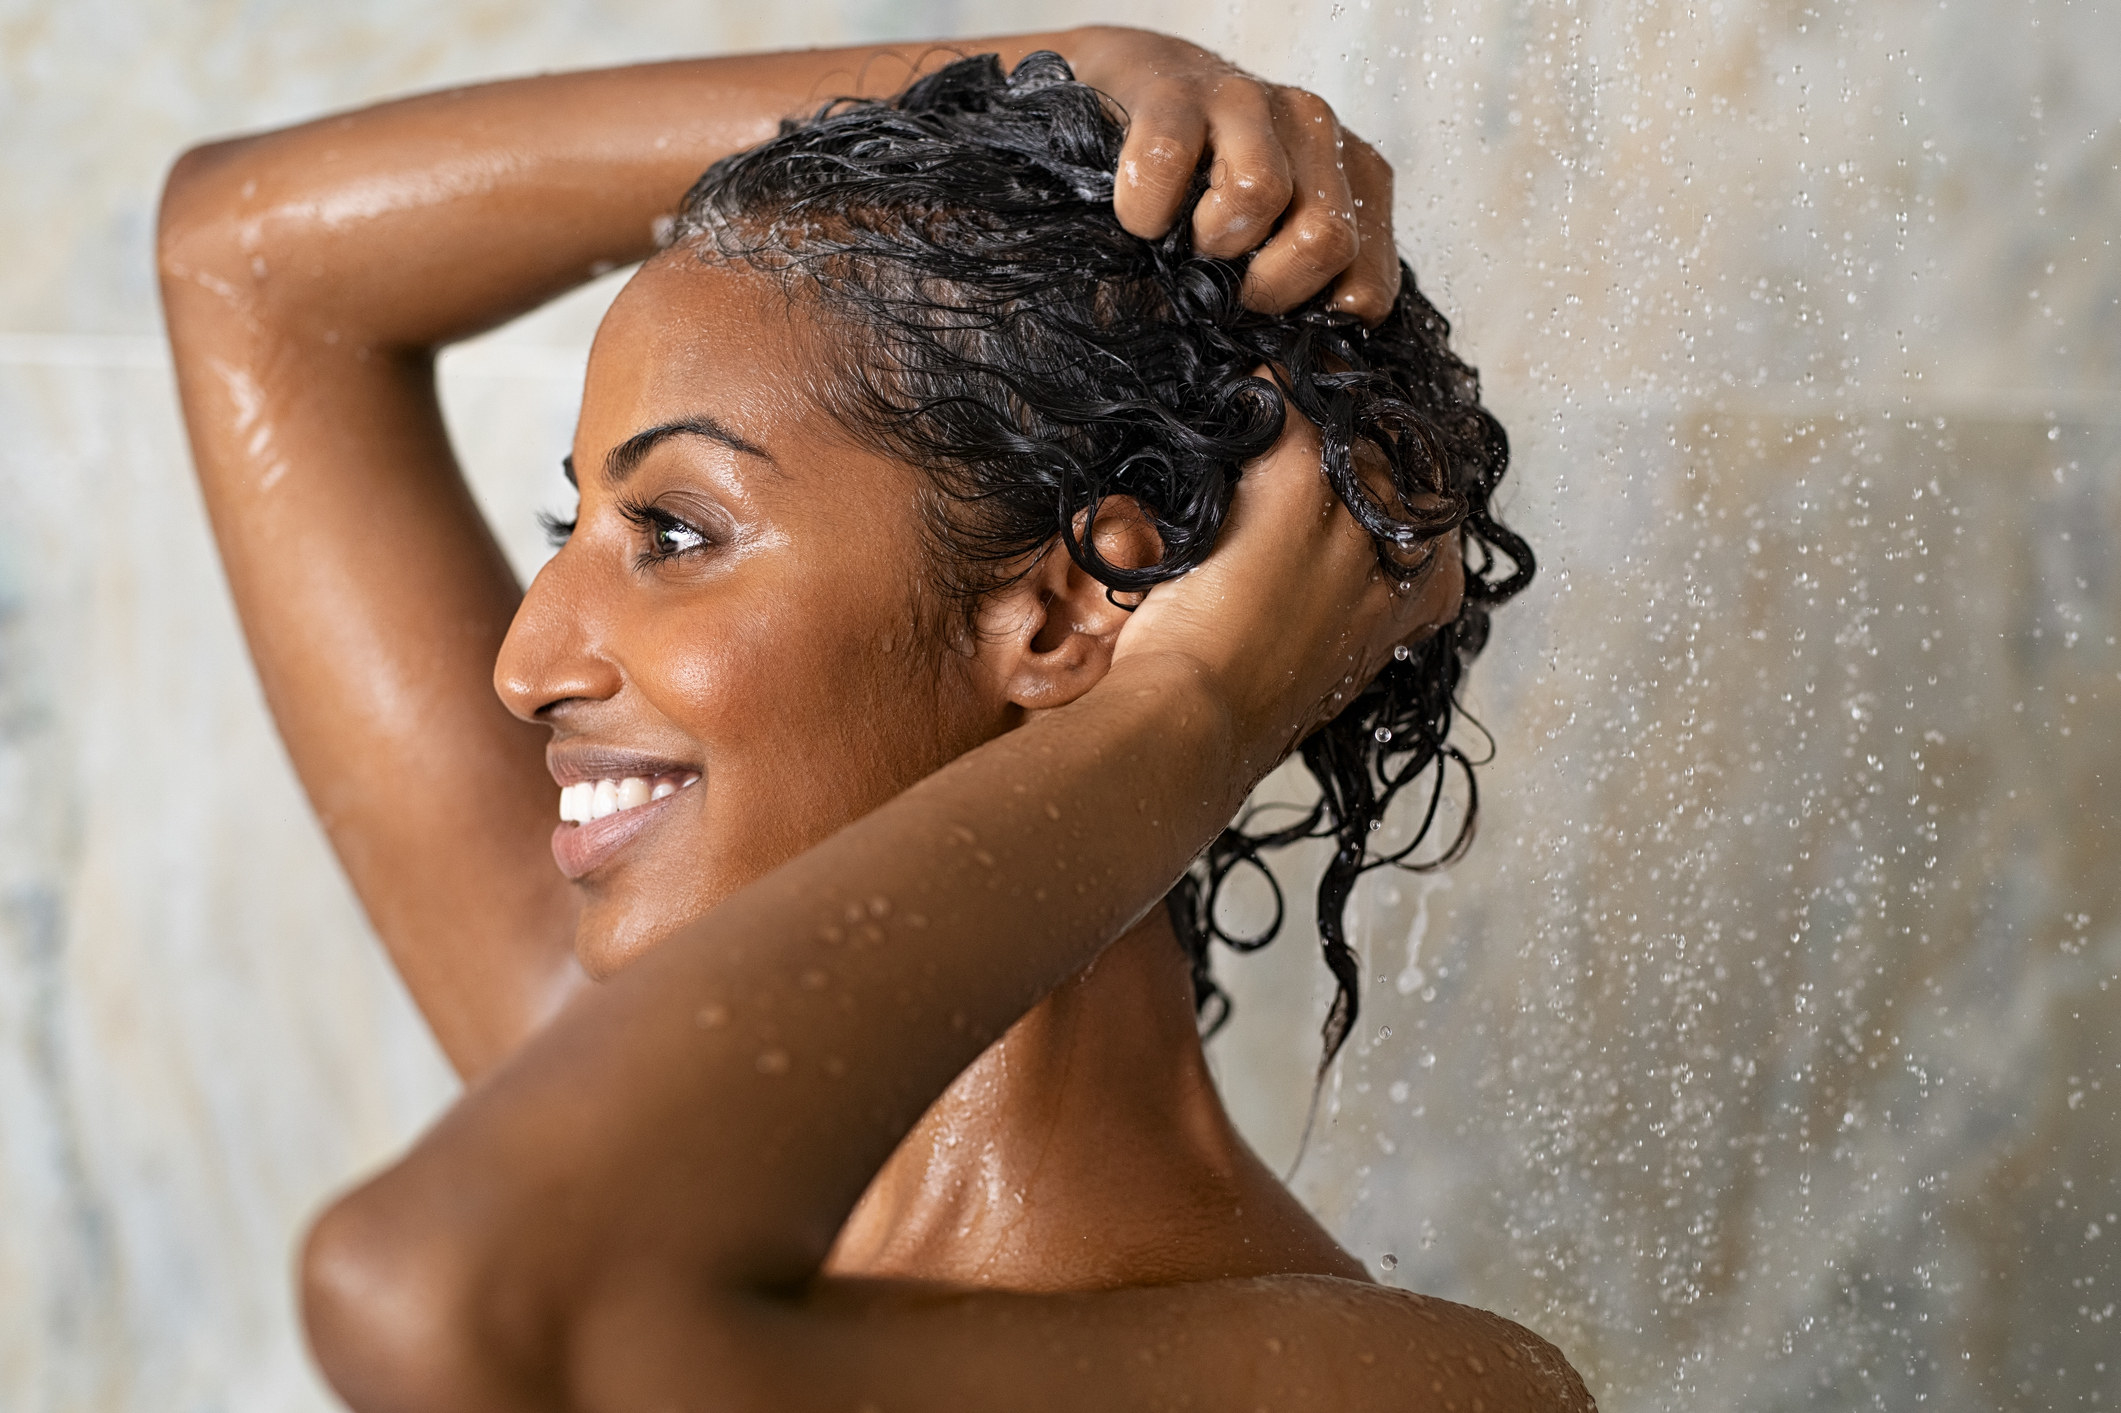 Woman washing hair showering in bathroom at home.